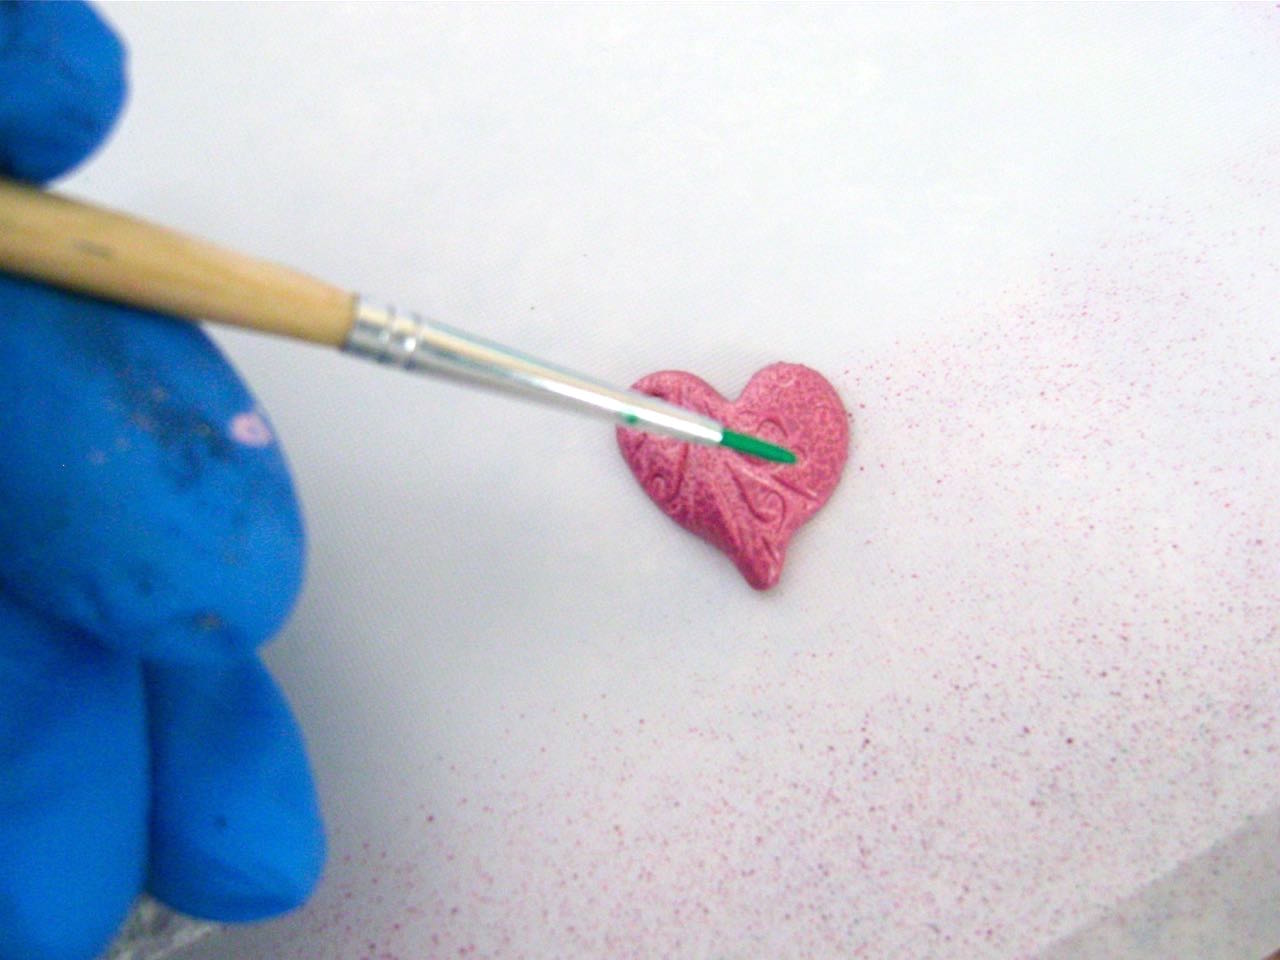 step 11 - Create contrasts to bring out the small details in the surface of the pink and mauve hearts.  In a small container, water down a little of the green color.  Use a small brush to apply it across the hearts being sure it seeps into the impressions.  Immediately dab at the paint with a rag to remove most of the wet paint leaving color in the impressions.